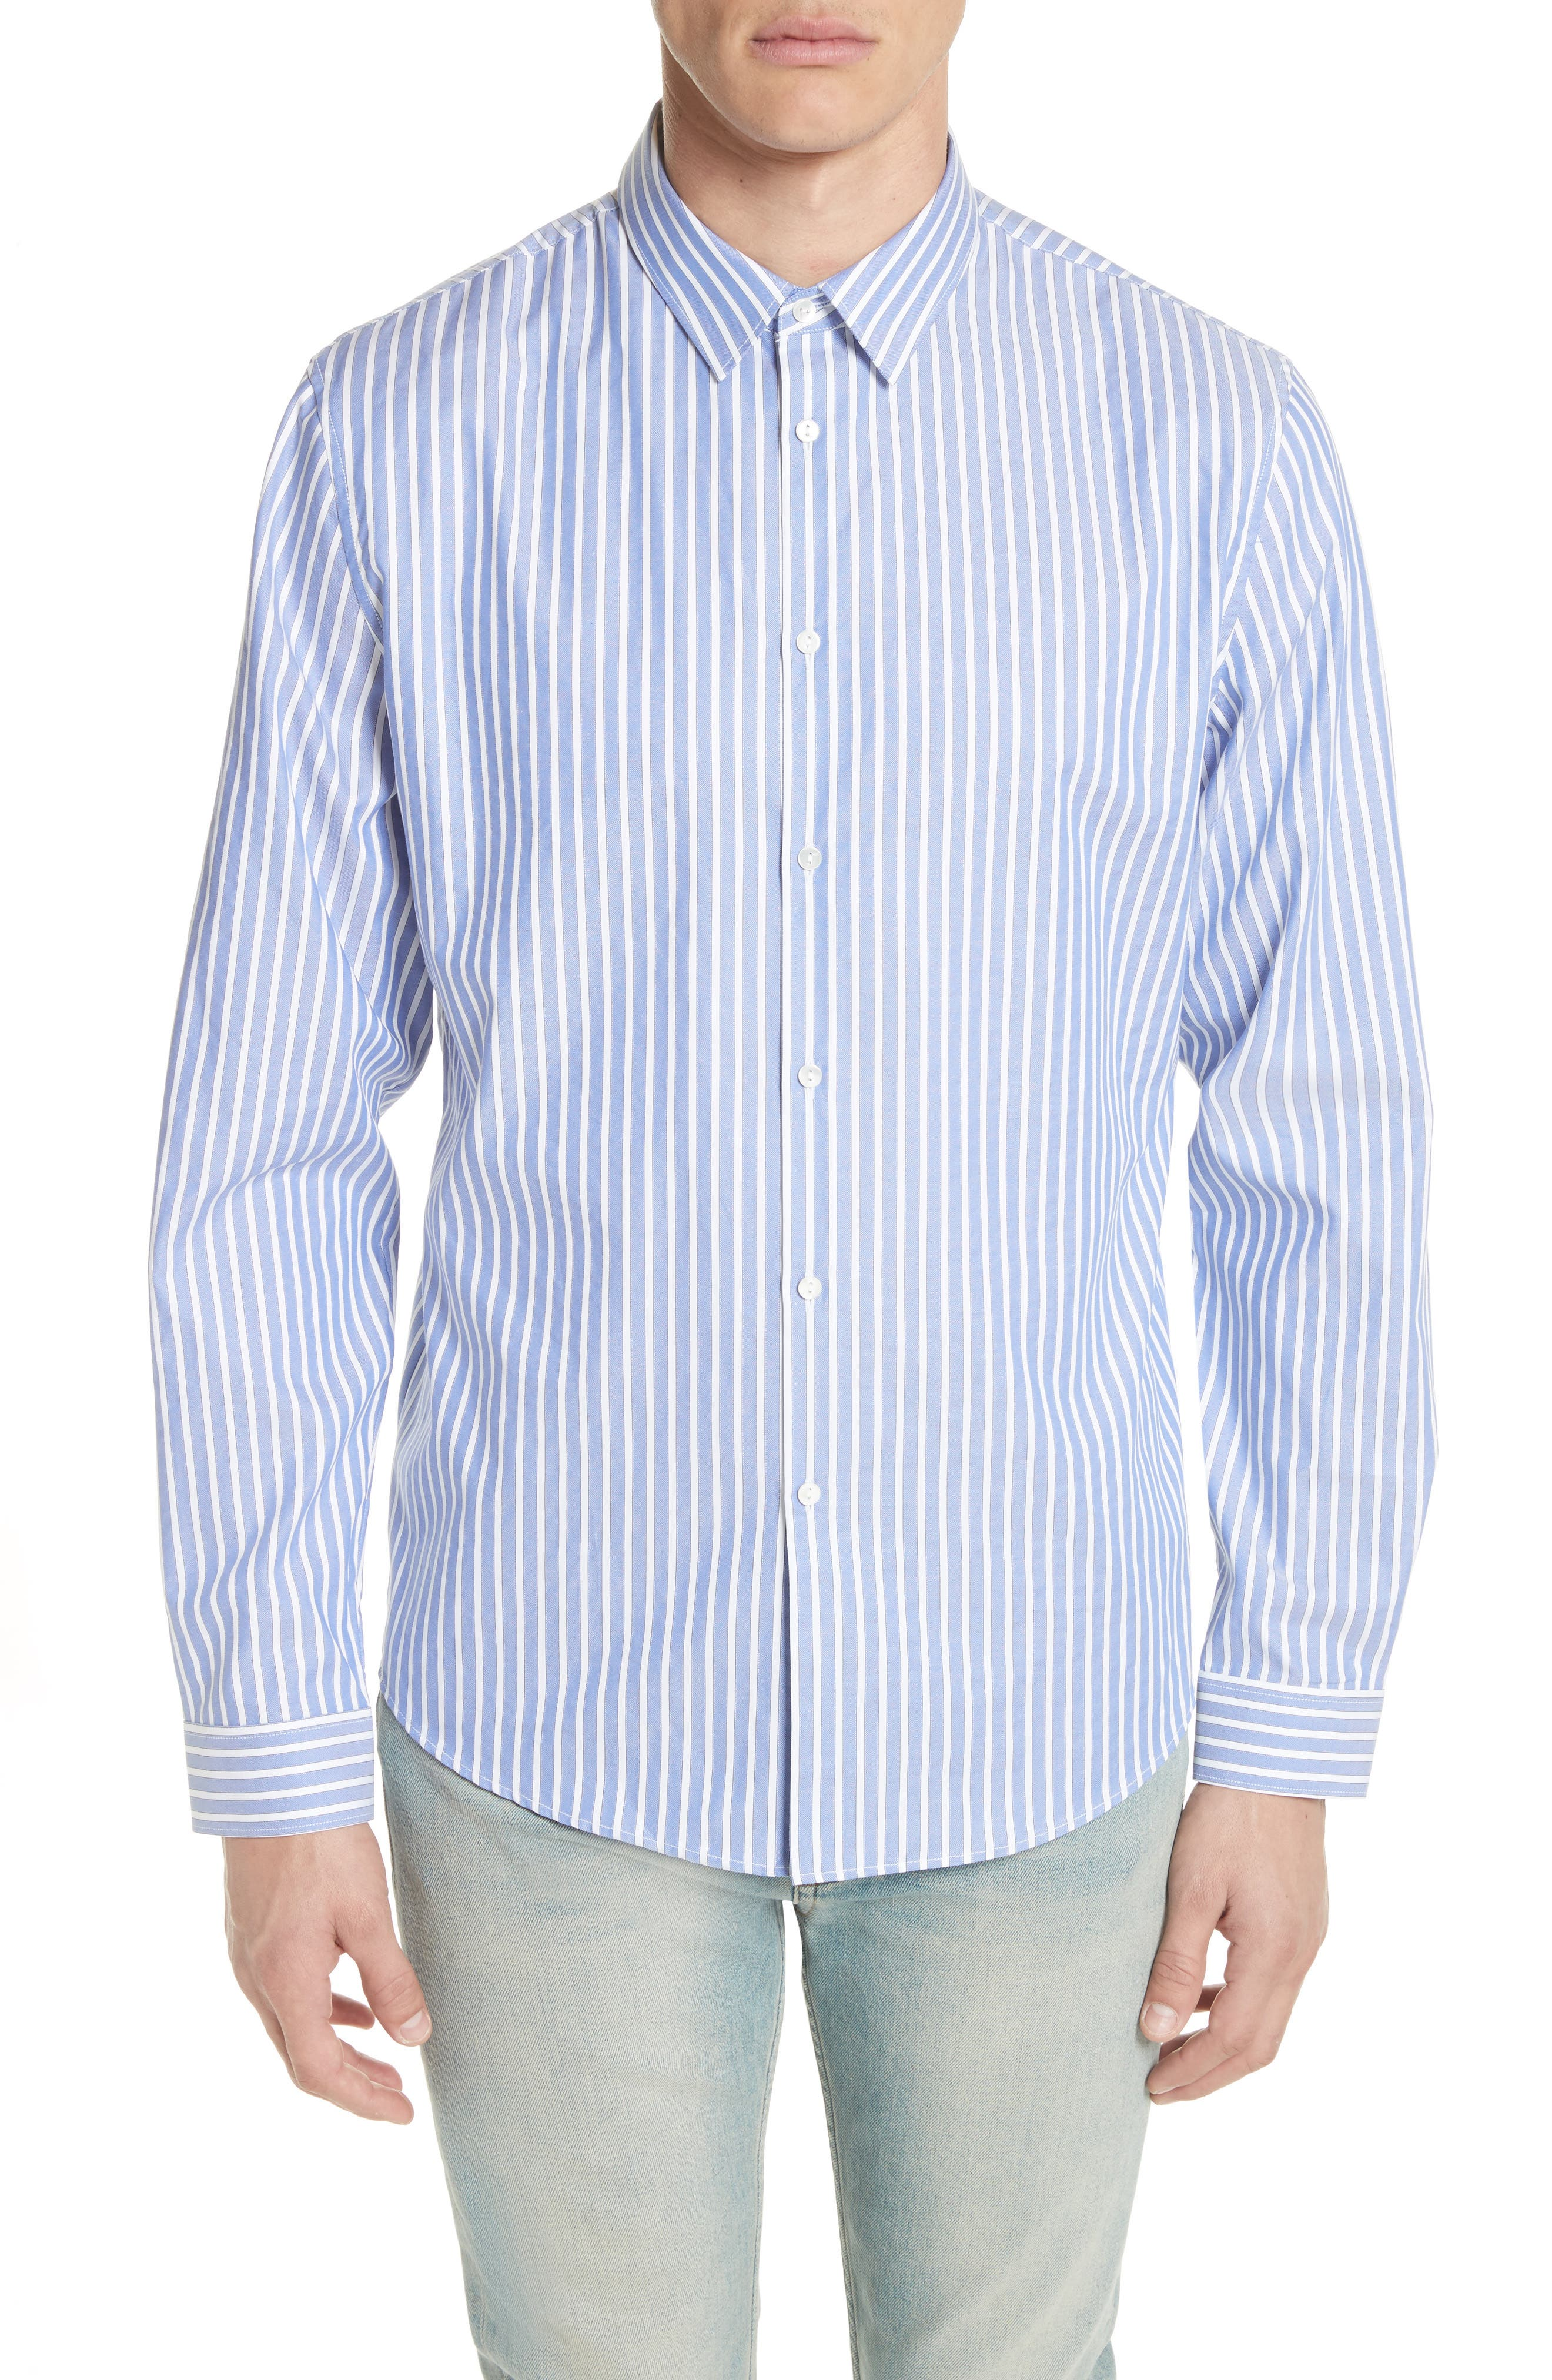 Bee Embroidered Stripe Dress Shirt,                             Main thumbnail 1, color,                             4869 BLUE